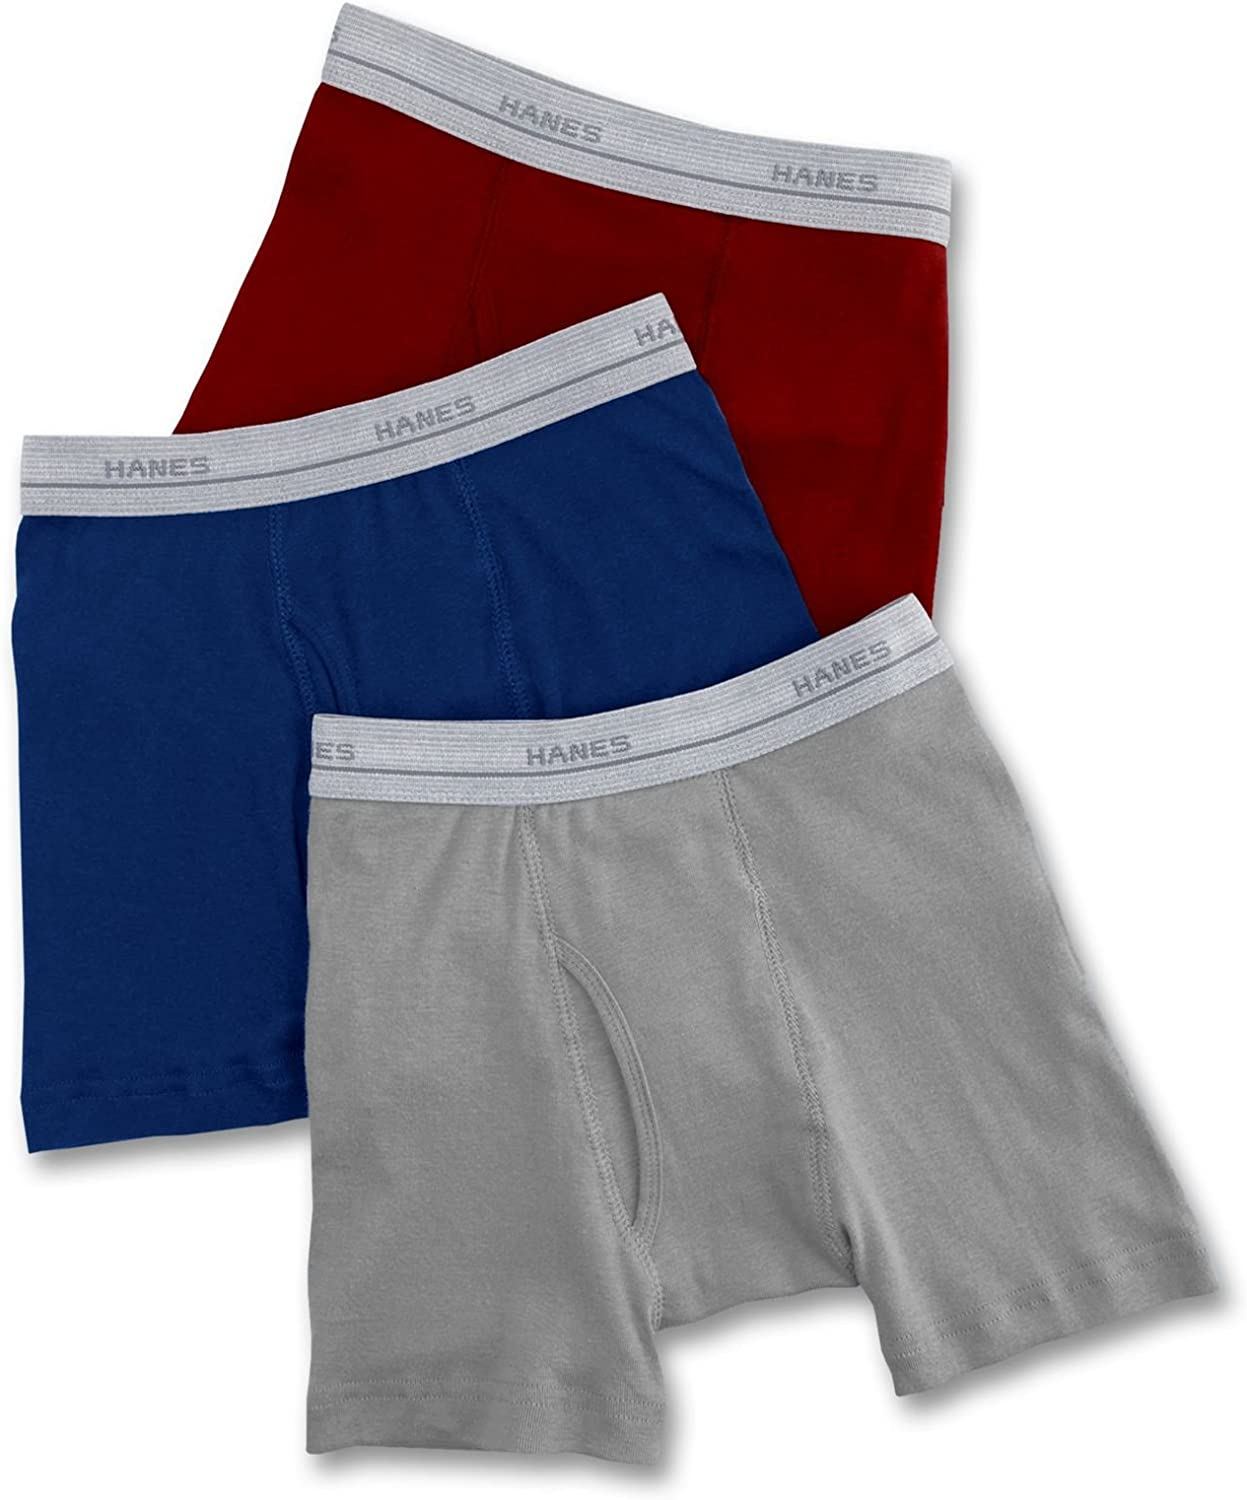 Hanes Boys Classic Exposed Waistband Boxer Briefs (2-Pack)